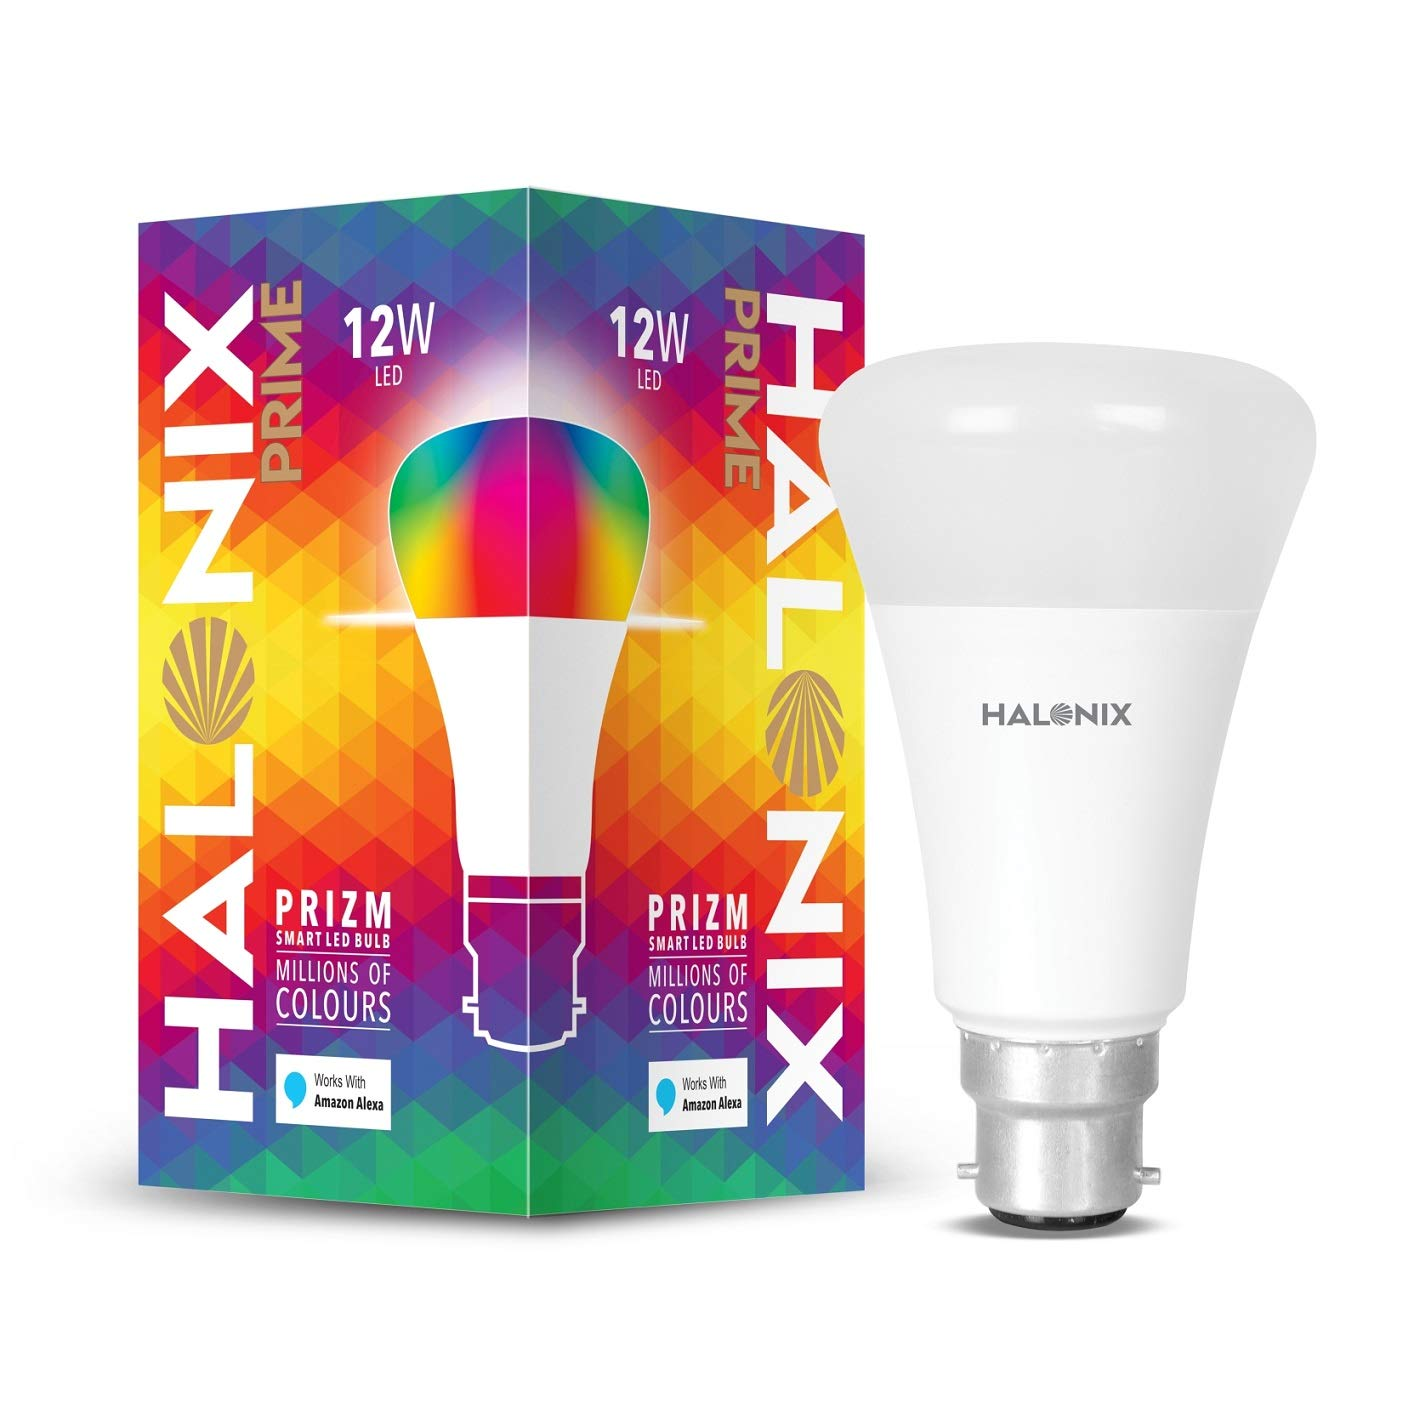 Halonix Wi-Fi Enabled Smart LED Bulb 12W B22 (16 Million Colors + Warm White/Neutral White/White) (Compatible with Amazon Alexa and Google Assistant)